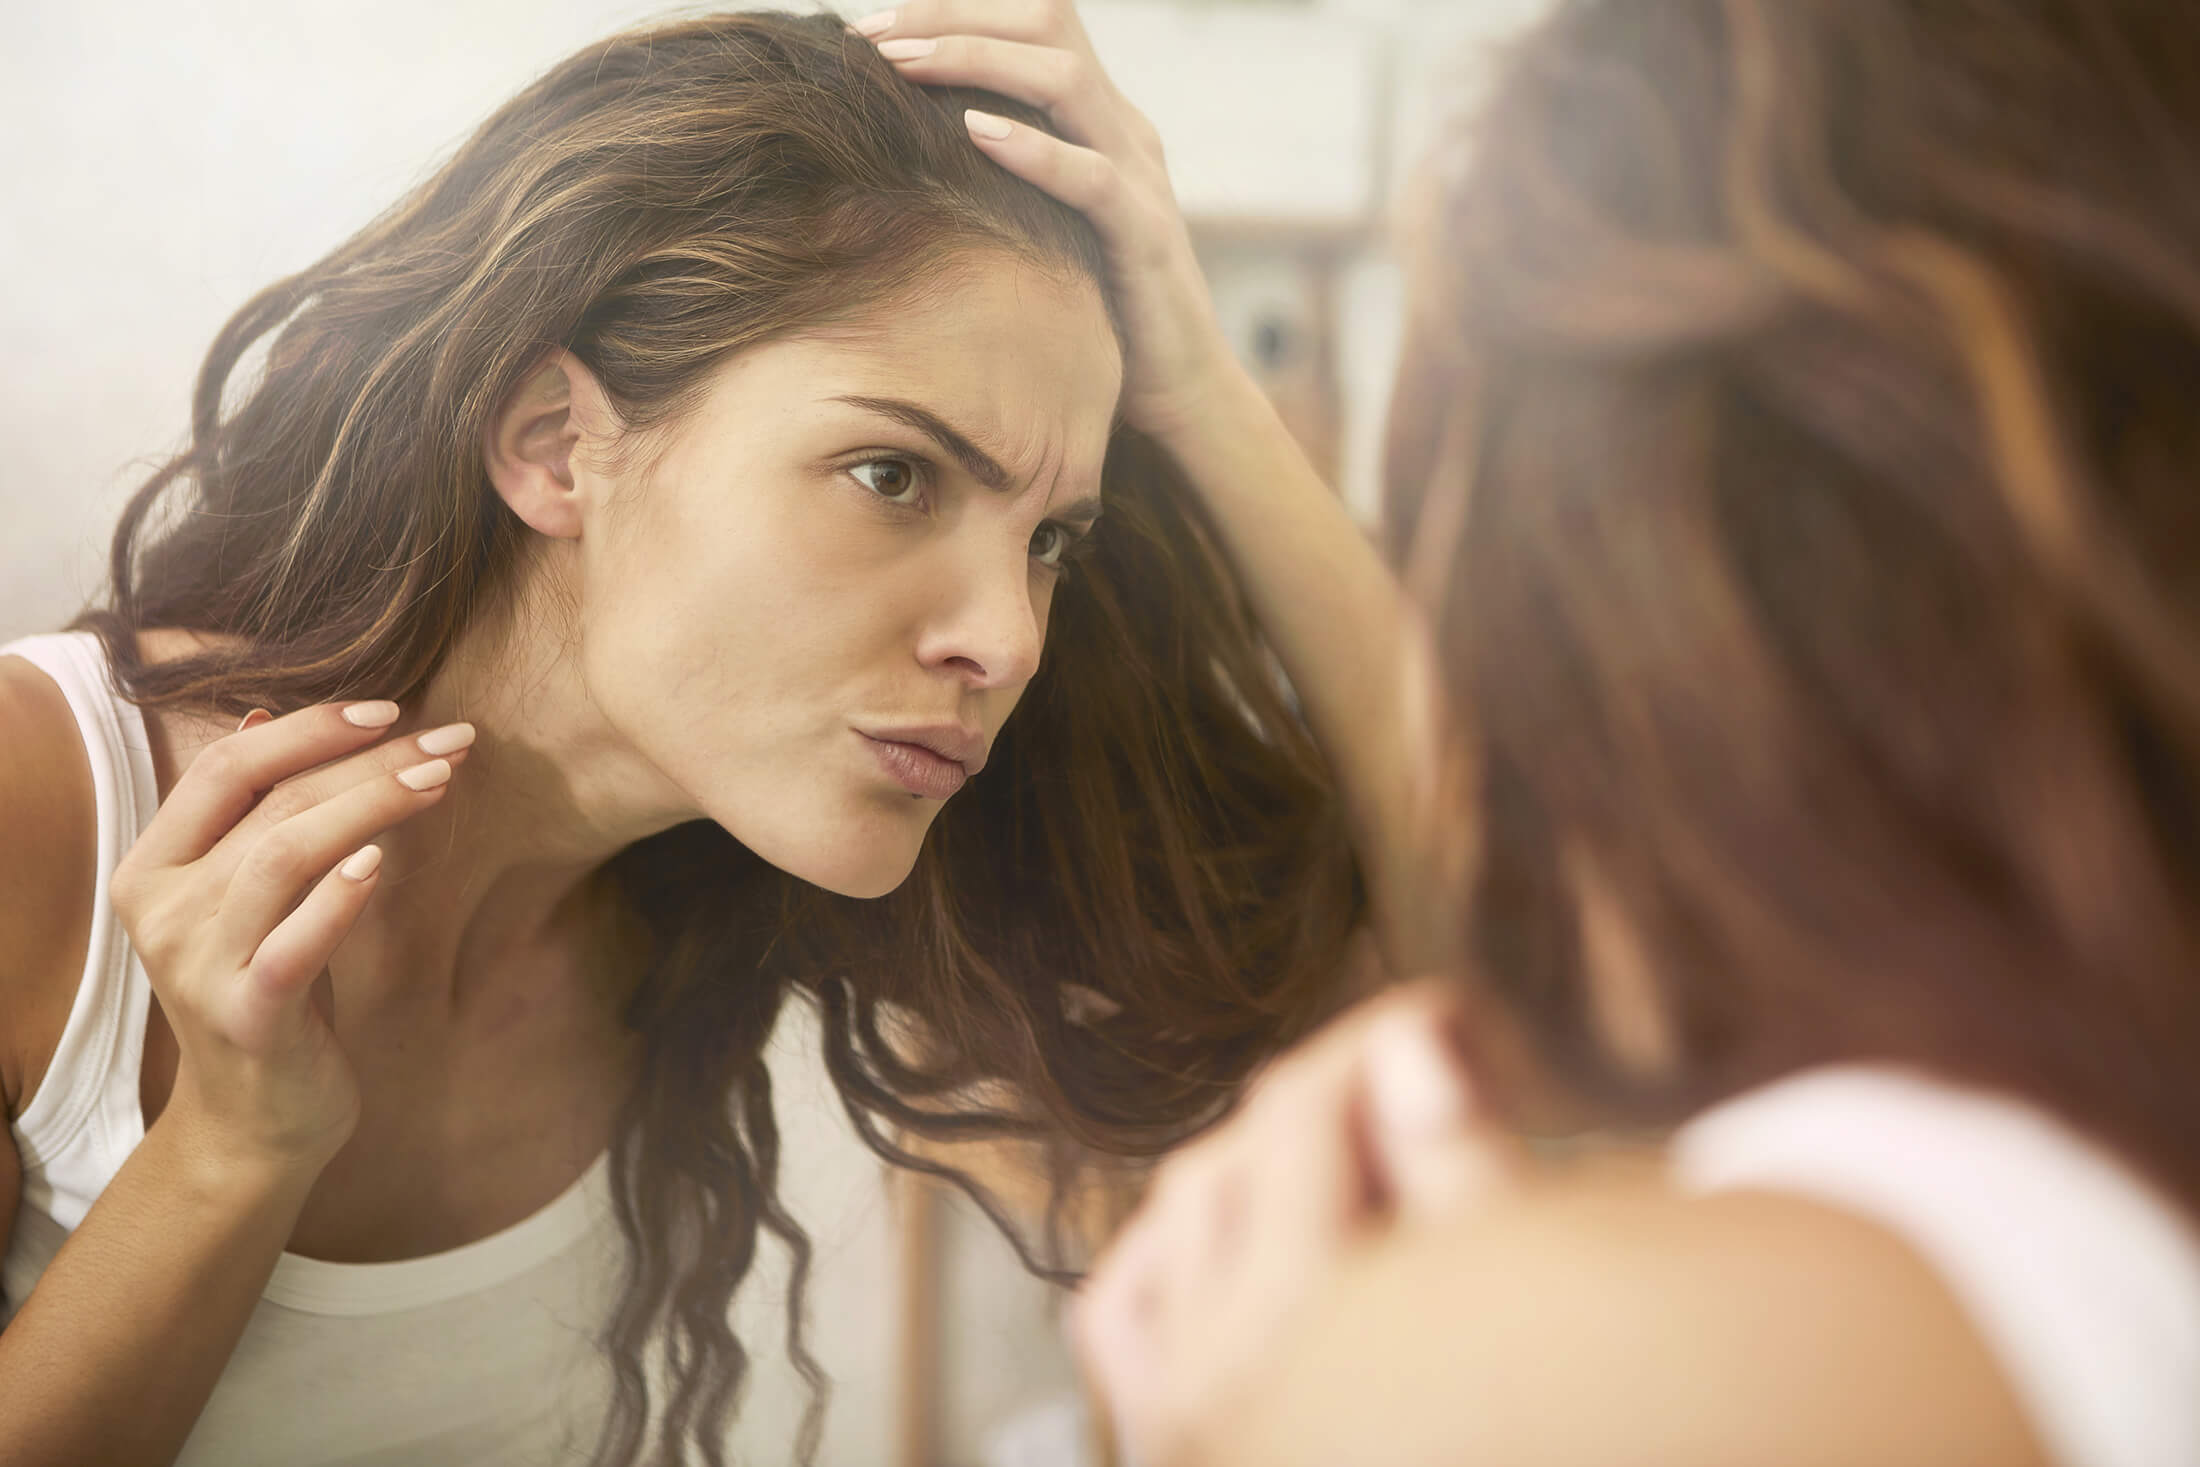 middle age woman looking in the mirror